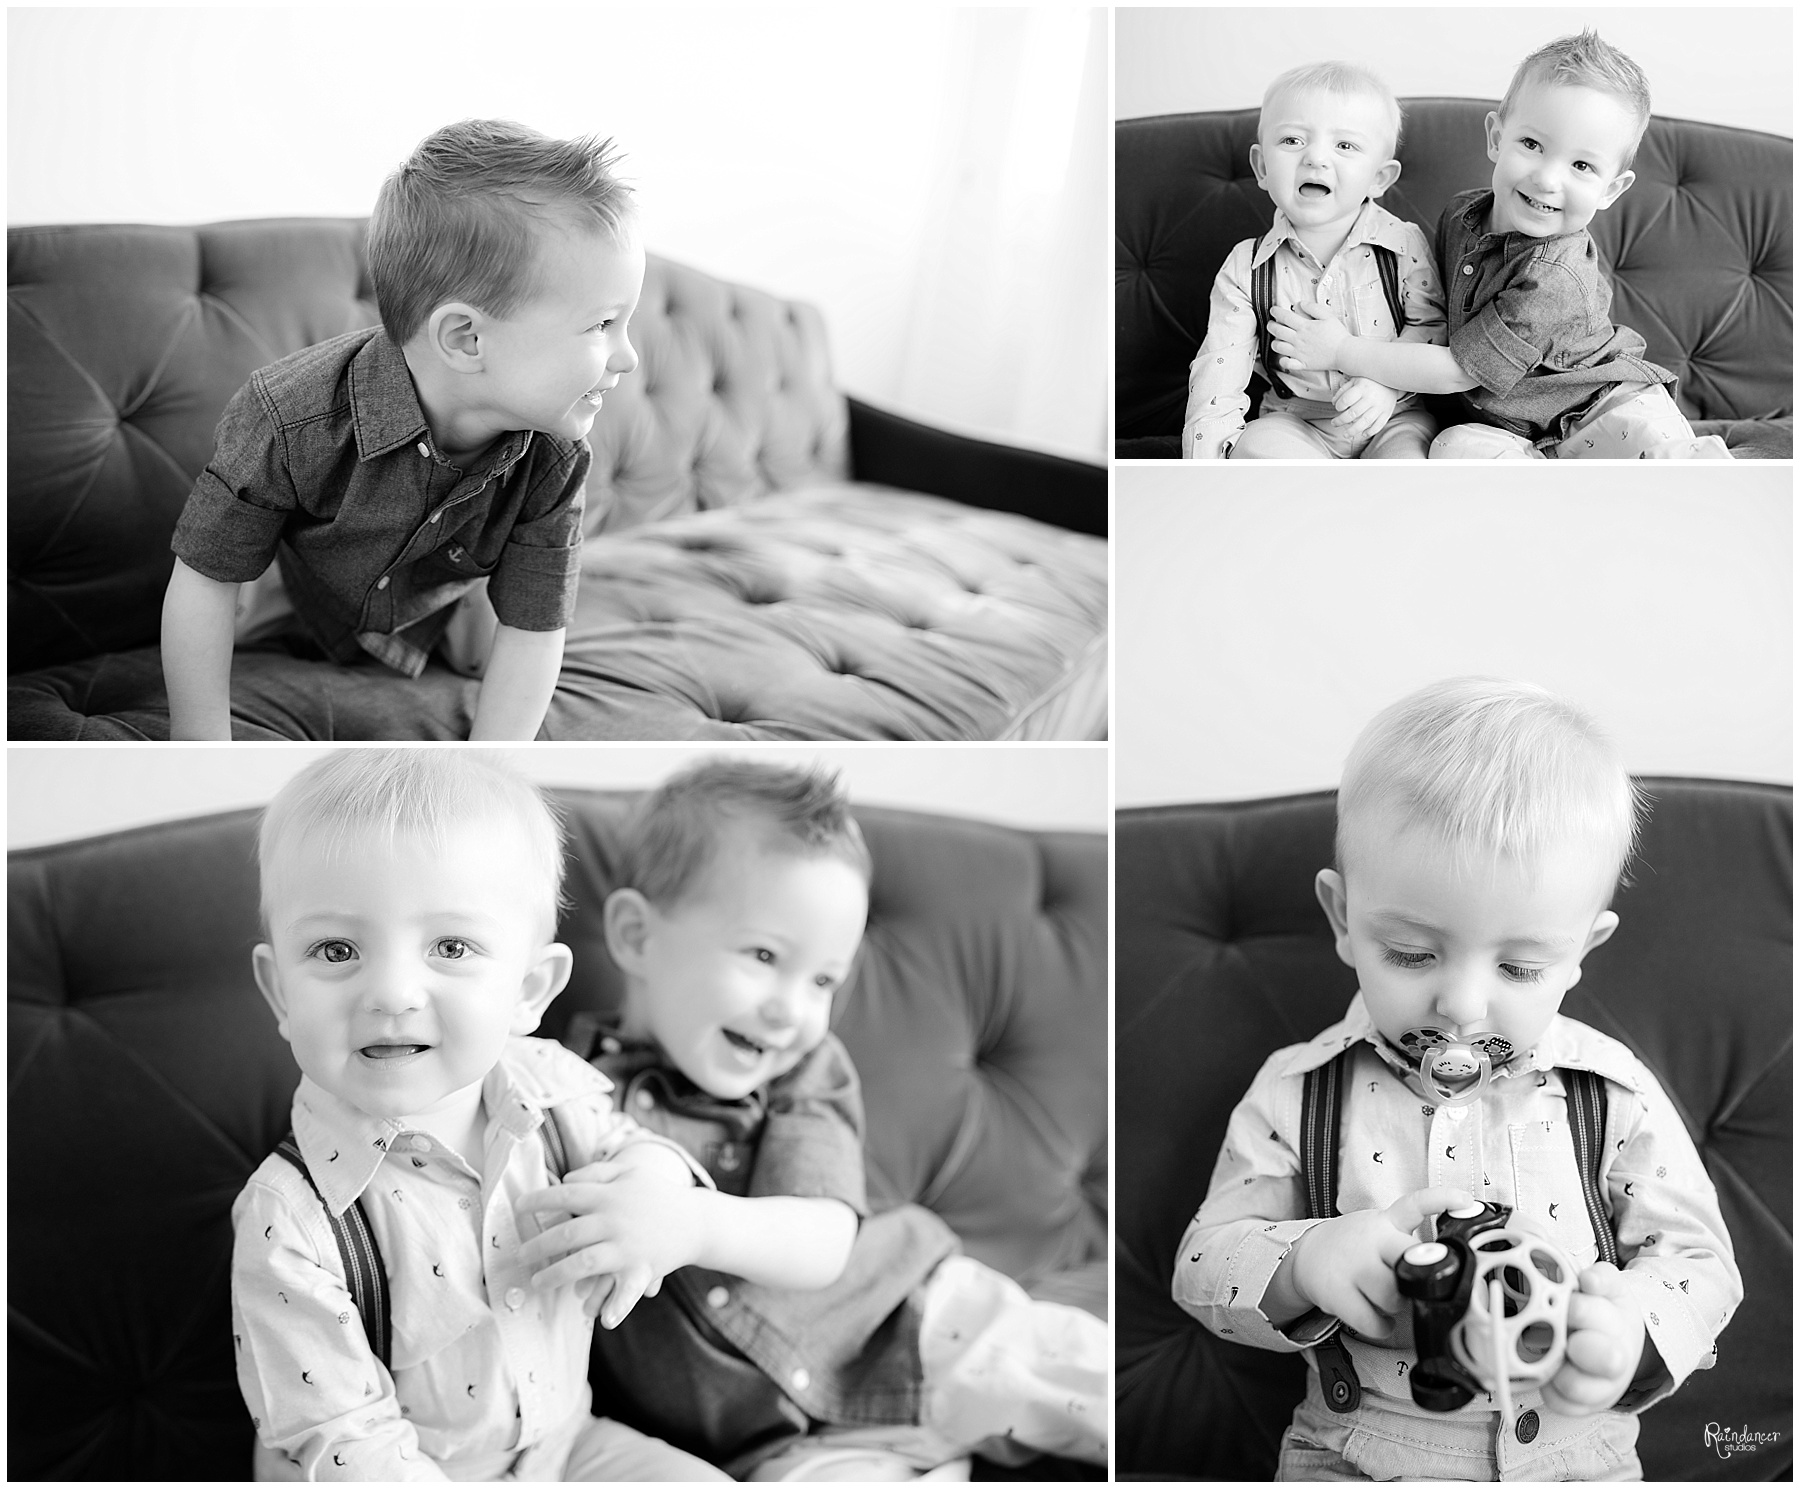 Two brothers playing together on a couch by Raindancer Studios Indianapolis Family Photographer Jill Howell